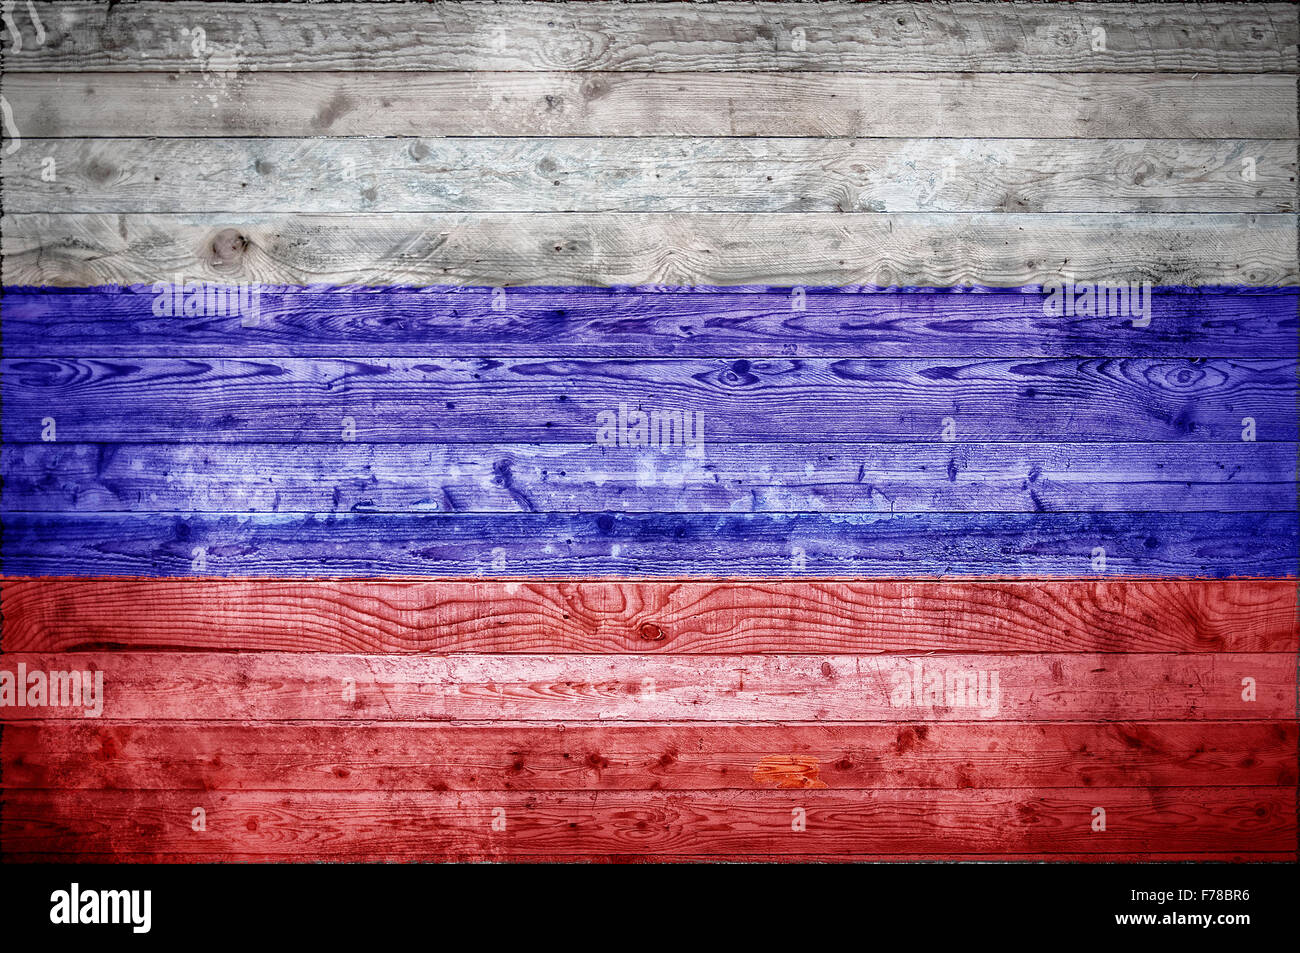 A vignetted background image of the flag of Russian Federation onto wooden boards of a wall or floor. - Stock Image